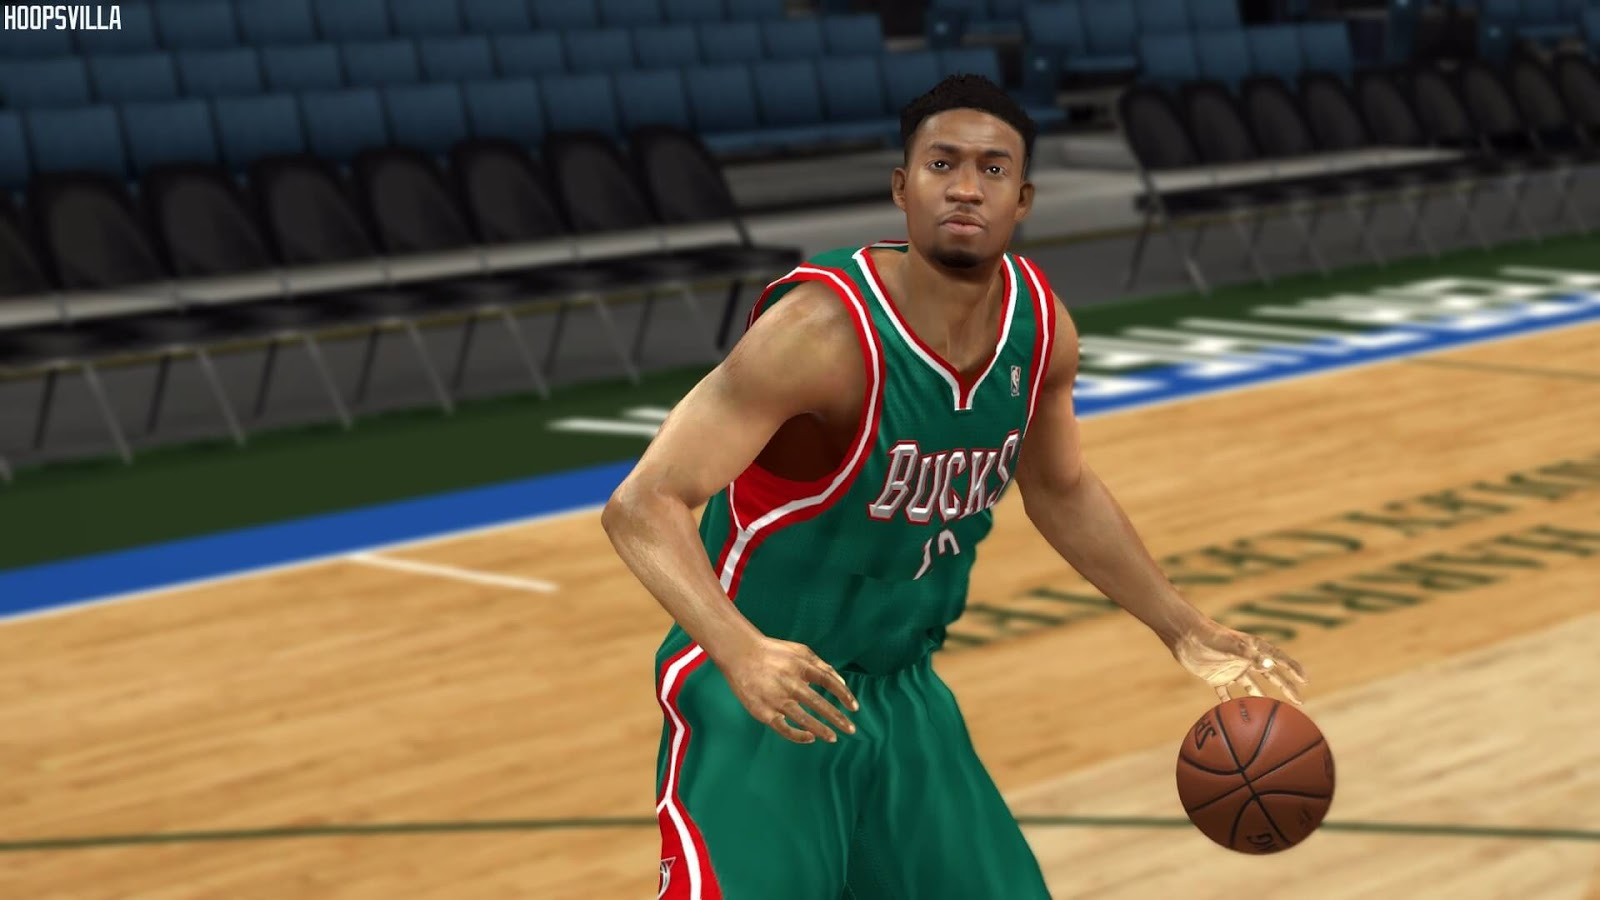 NBA 2k14 Cyberface Patch : Jabari Parker (Bucks)